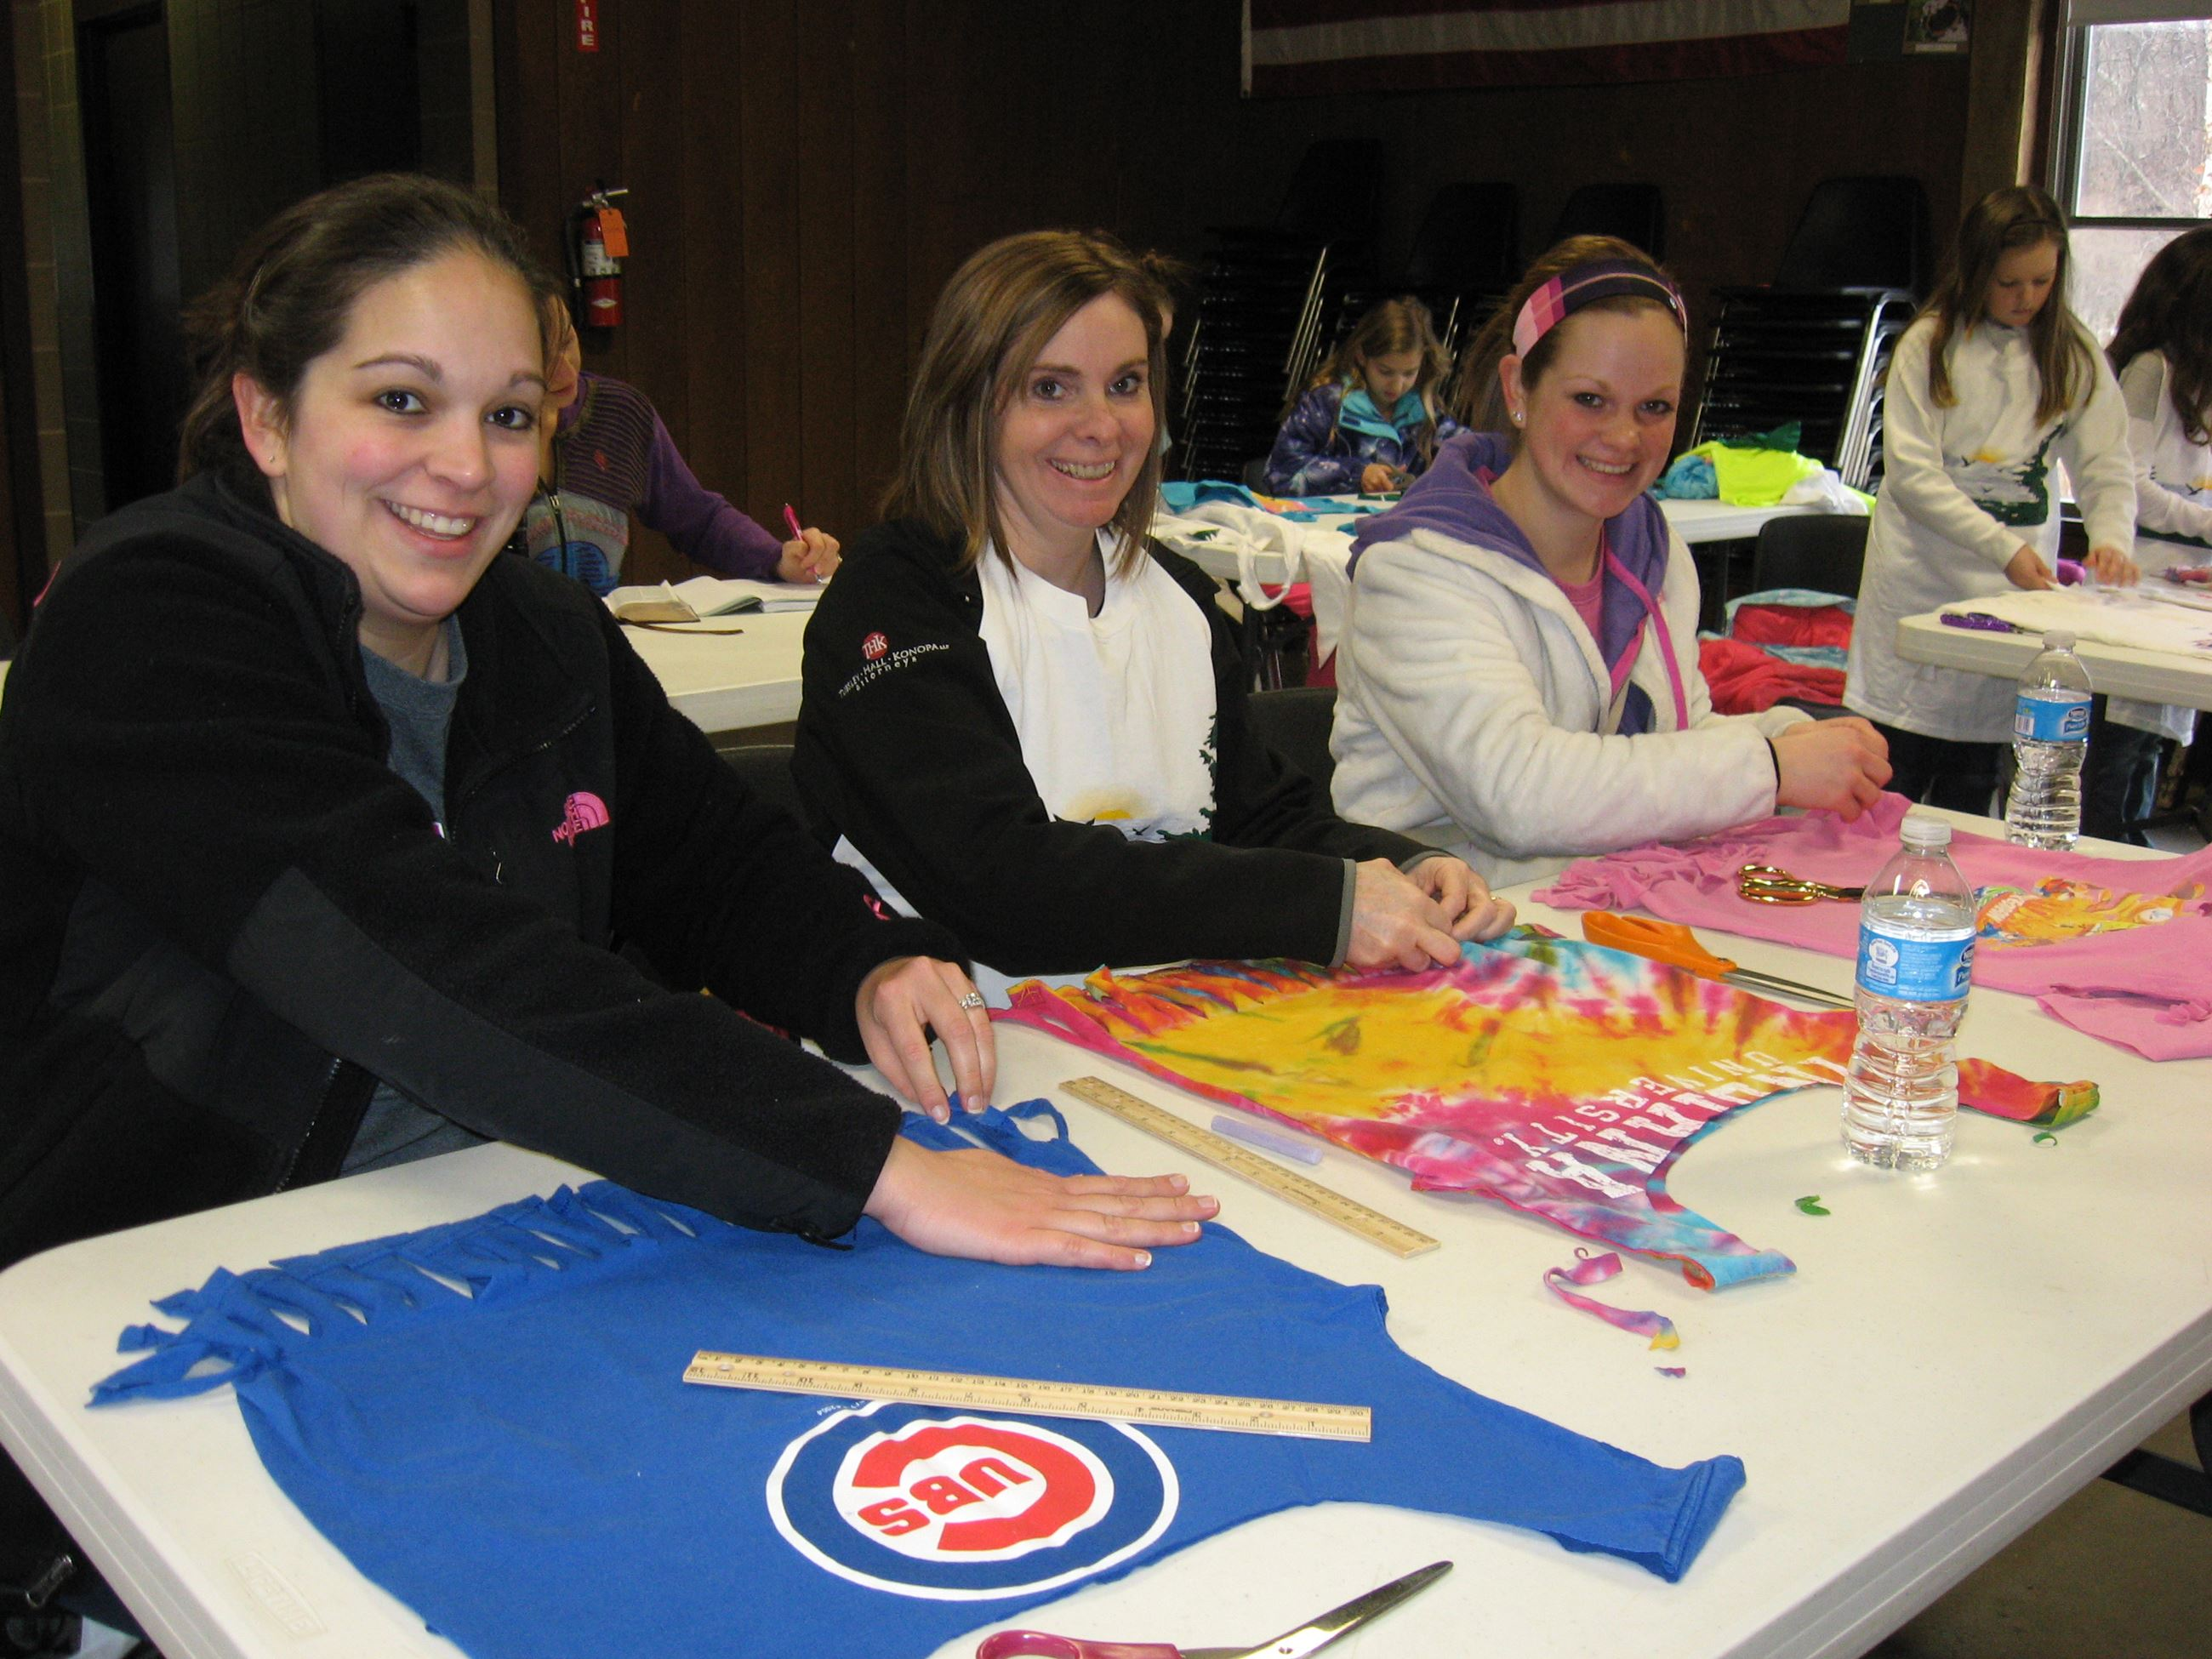 workshop participants create totes and aprons from old T shirts